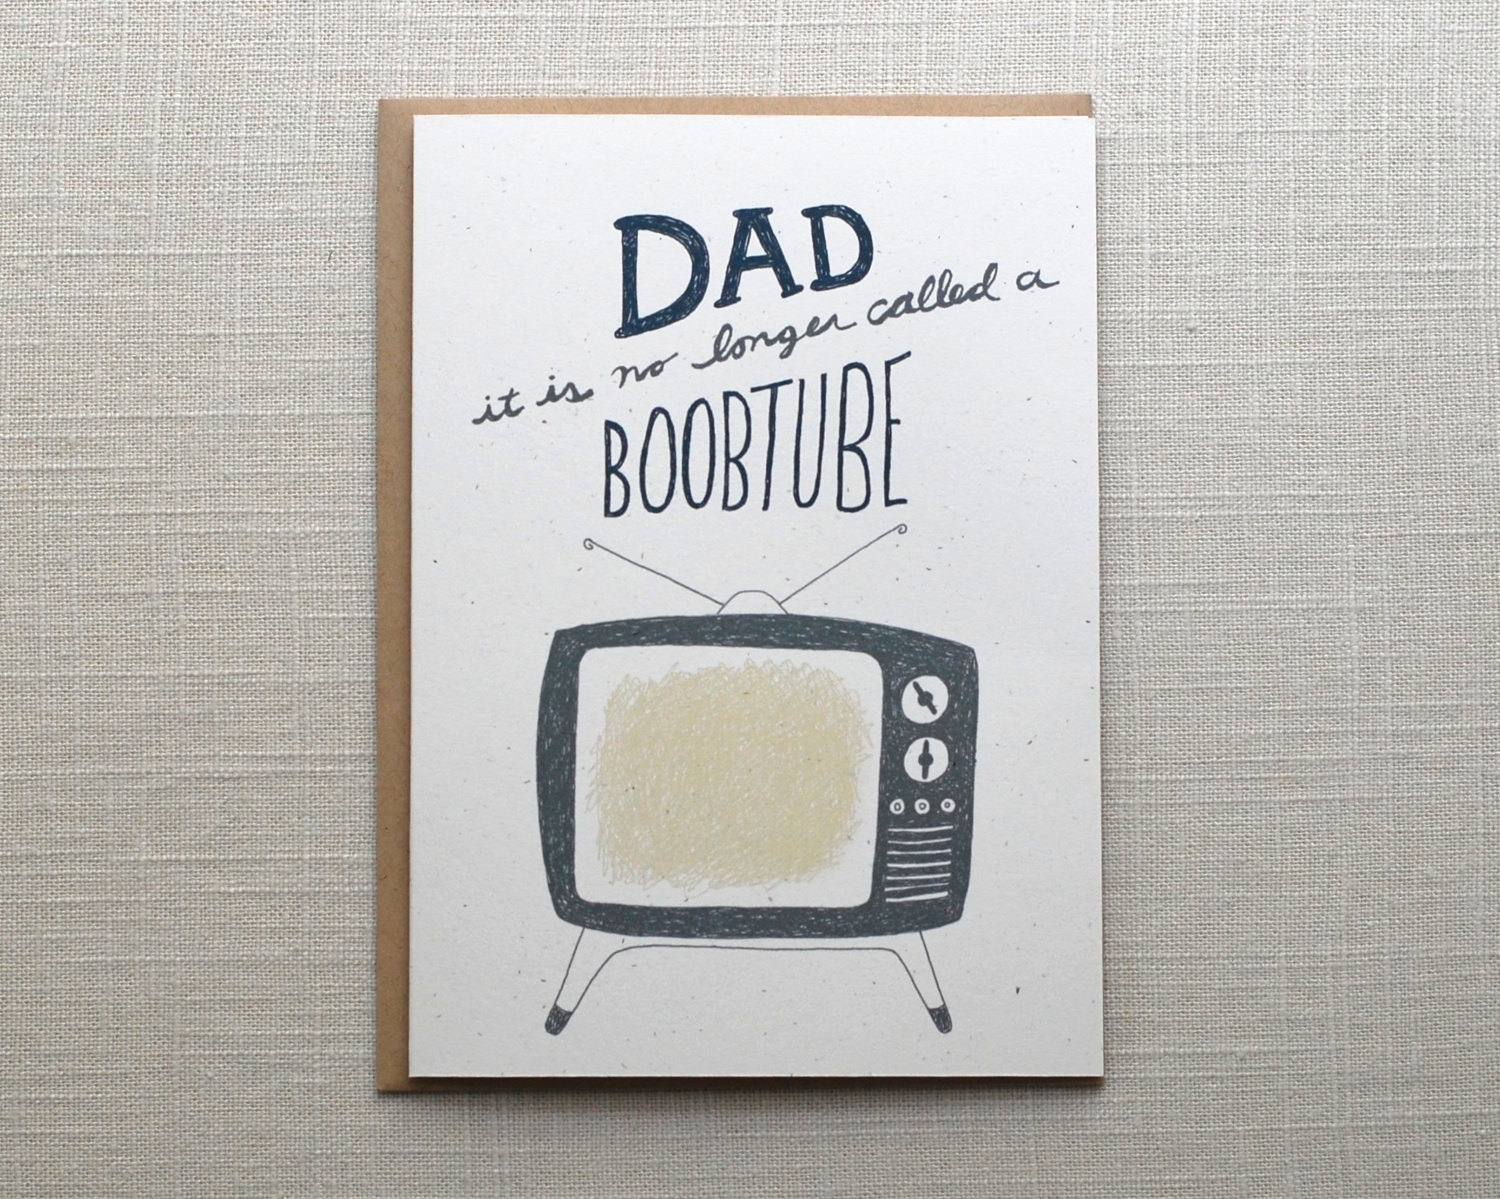 creative birthday card ideas for dad ; creative-birthday-card-ideas-for-best-friend-new-colors-birthday-card-ideas-brother-in-conjunction-with-birthday-of-creative-birthday-card-ideas-for-best-friend